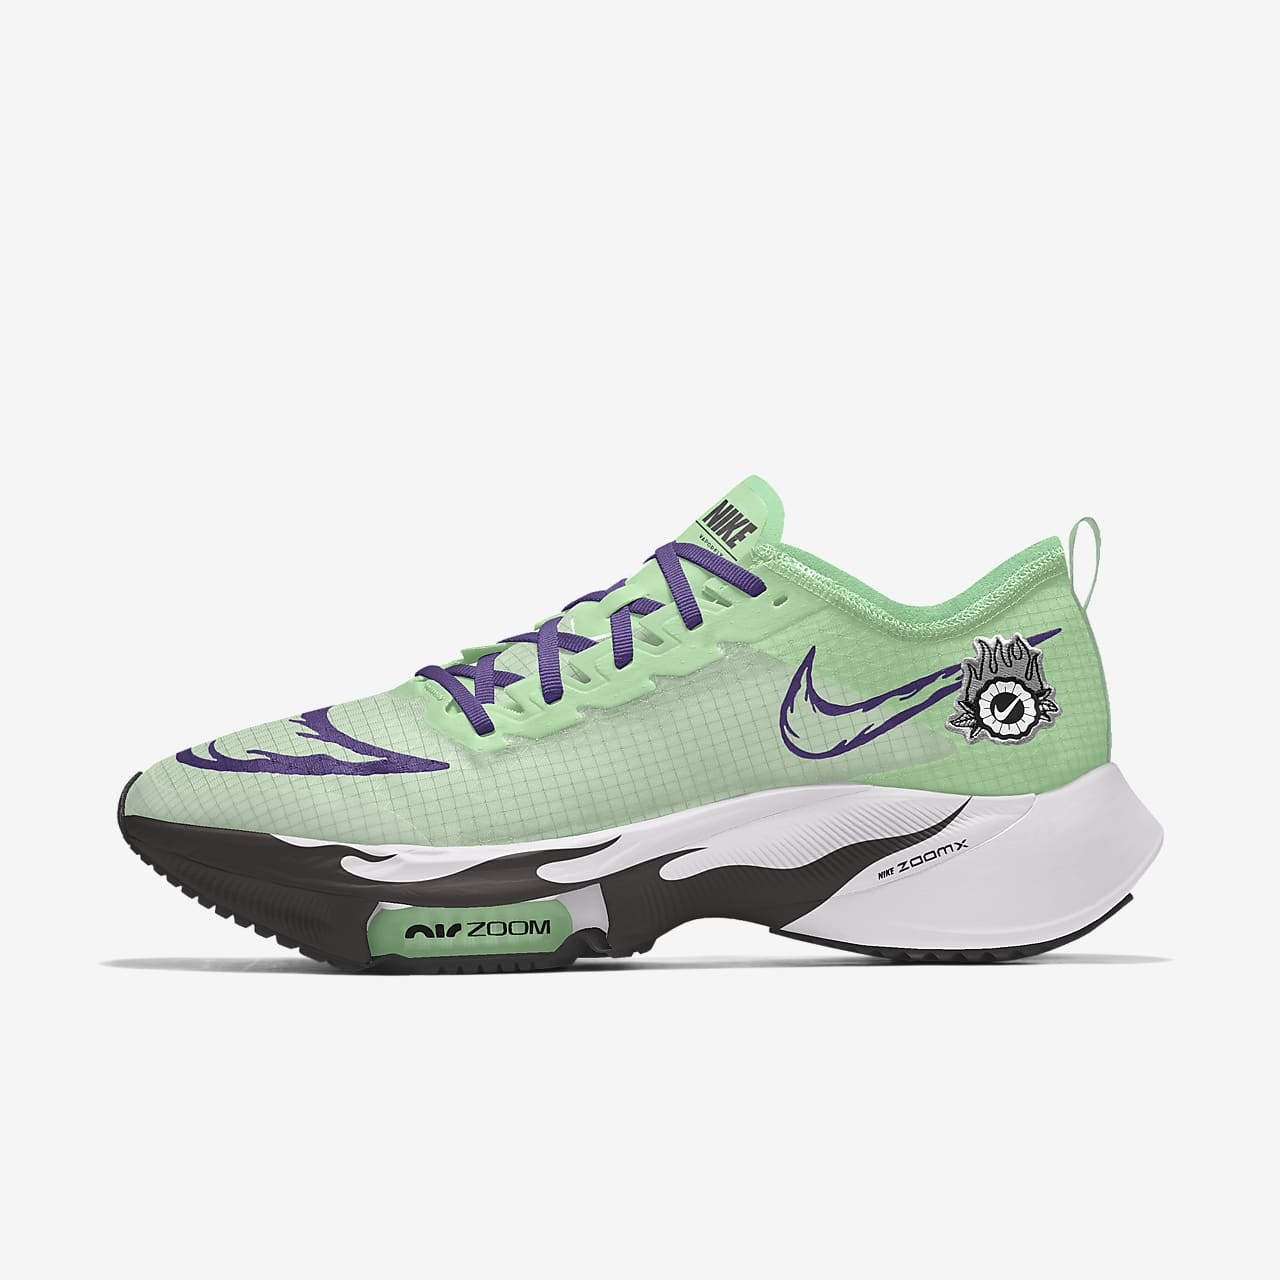 Nike Air Zoom Tempo Next% By You 专属定制跑步鞋